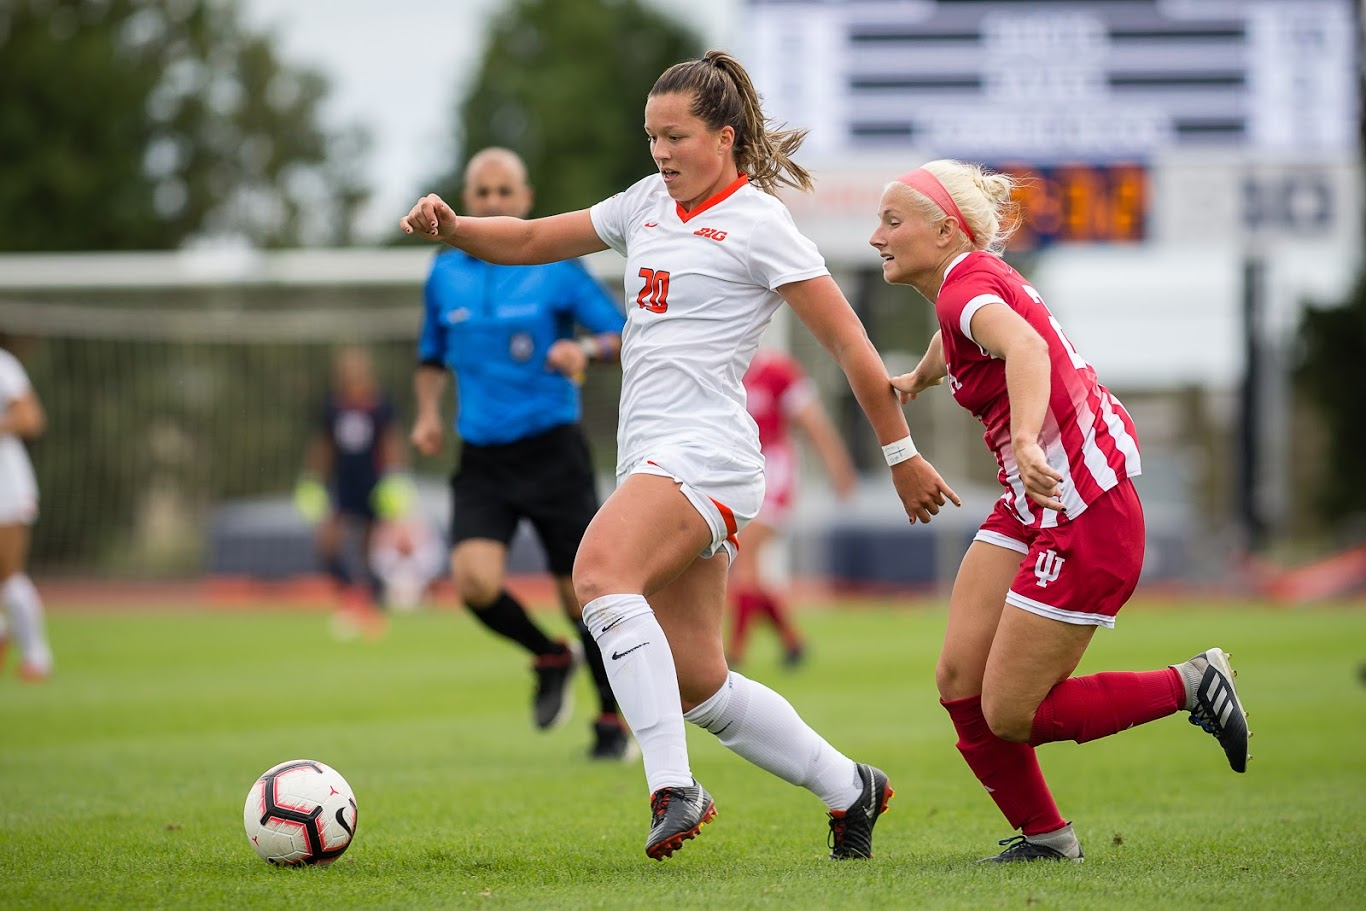 Illinois forward Makena Silber (20) dribbles the ball during the game against Indiana at the Illinois Soccer Stadium on Sunday, Oct. 14, 2018. The Illini won 1-0 in double overtime.